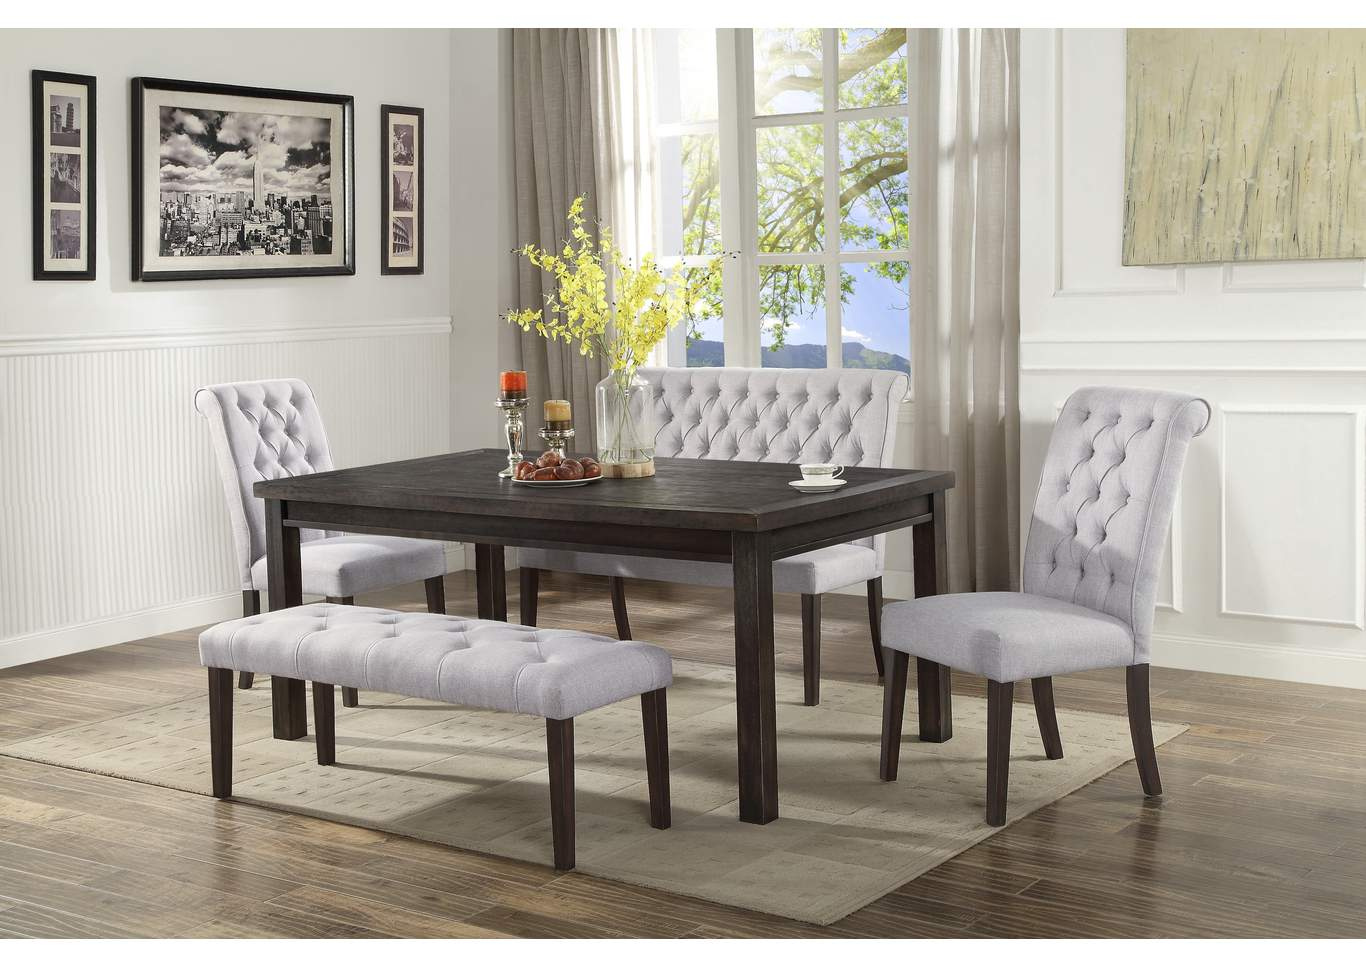 Virginia Furniture Co Palmer Dining Table